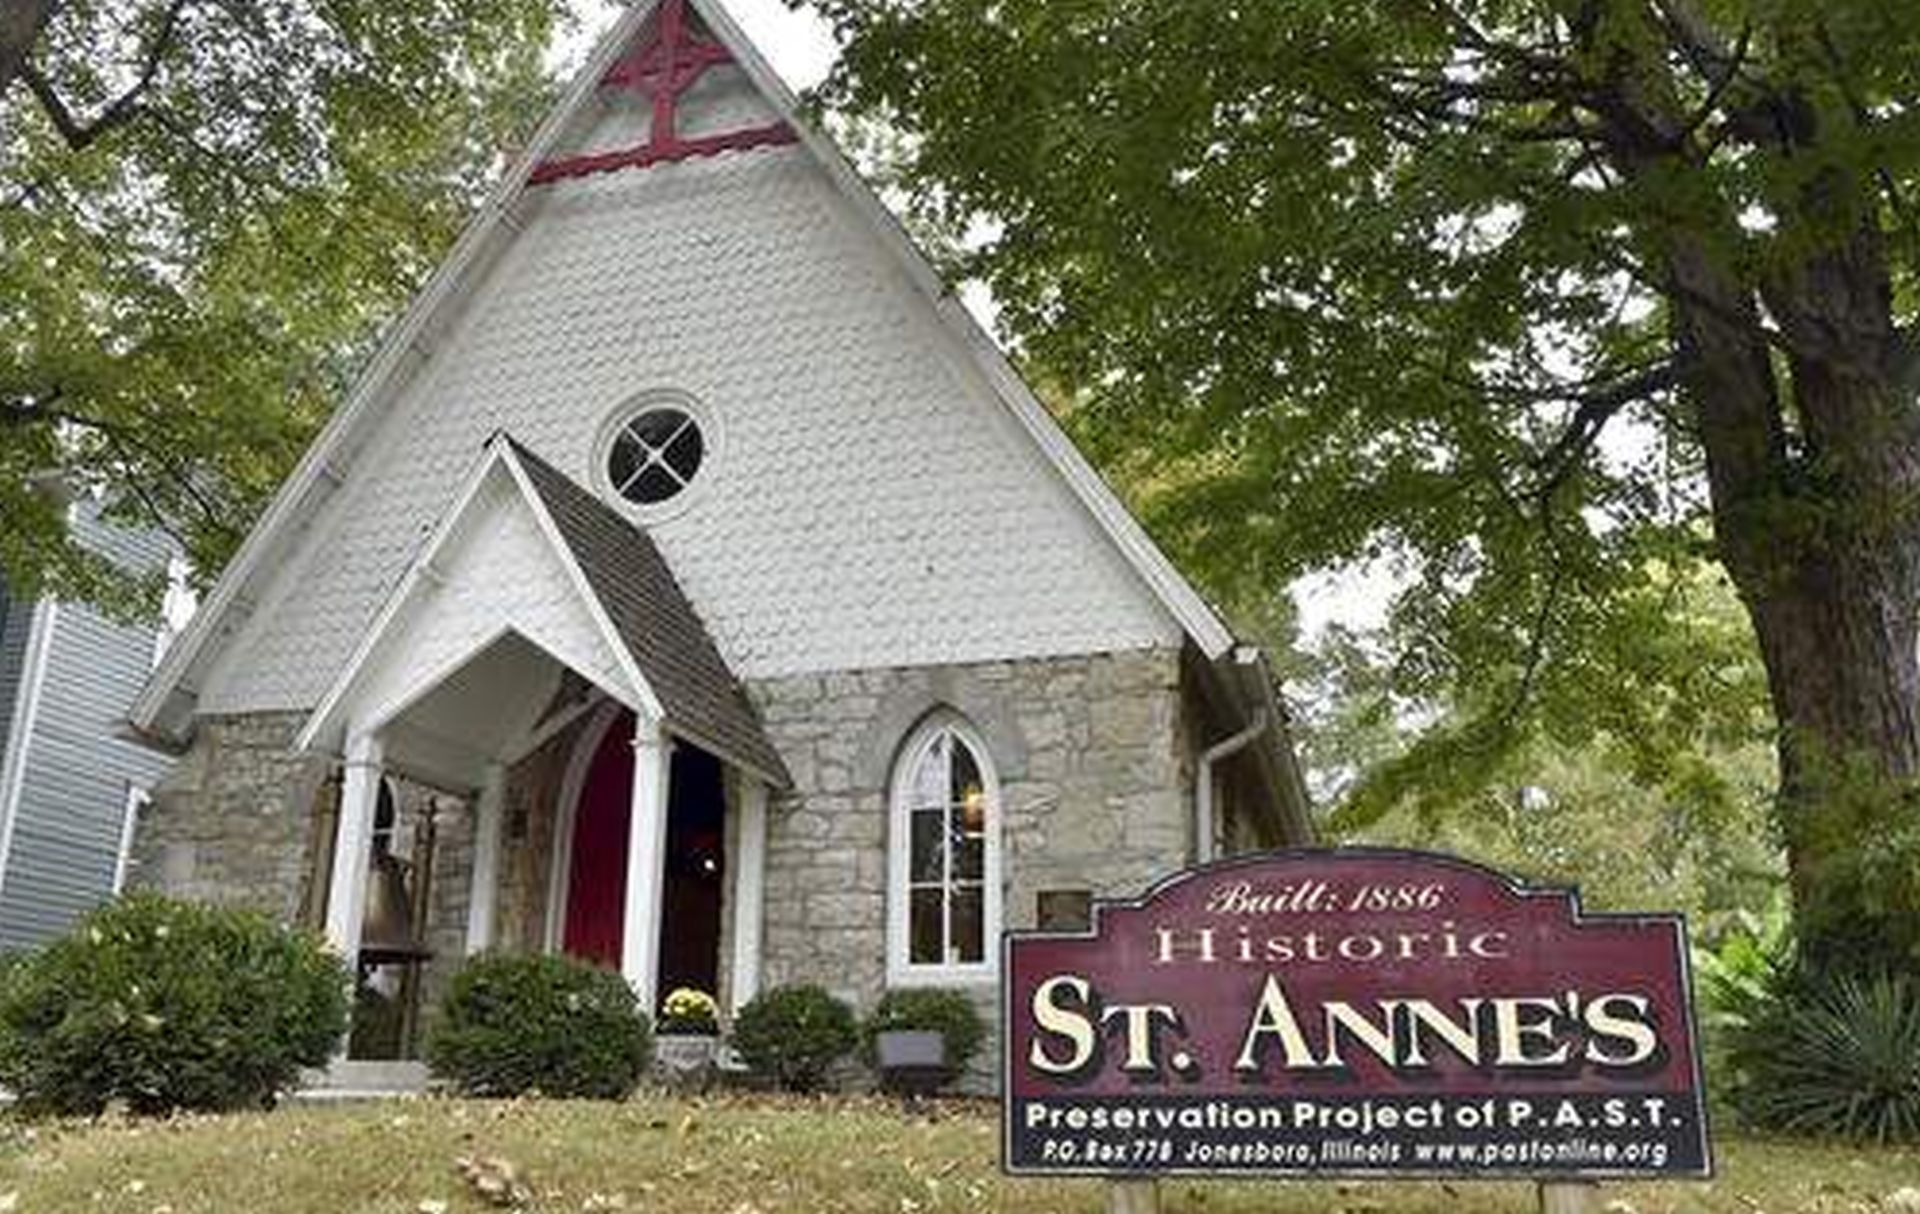 St. Anne's Episcopal Church in Anna, Ill. was built in 1886 and is one of the historic buildings preserved and restored by the group P.A.S.T (Promoting Appreciation of Structural Treasures). The church is listed on the U.S. National Register of Historic Places. (Richard Sitler/The Southern, via AP)